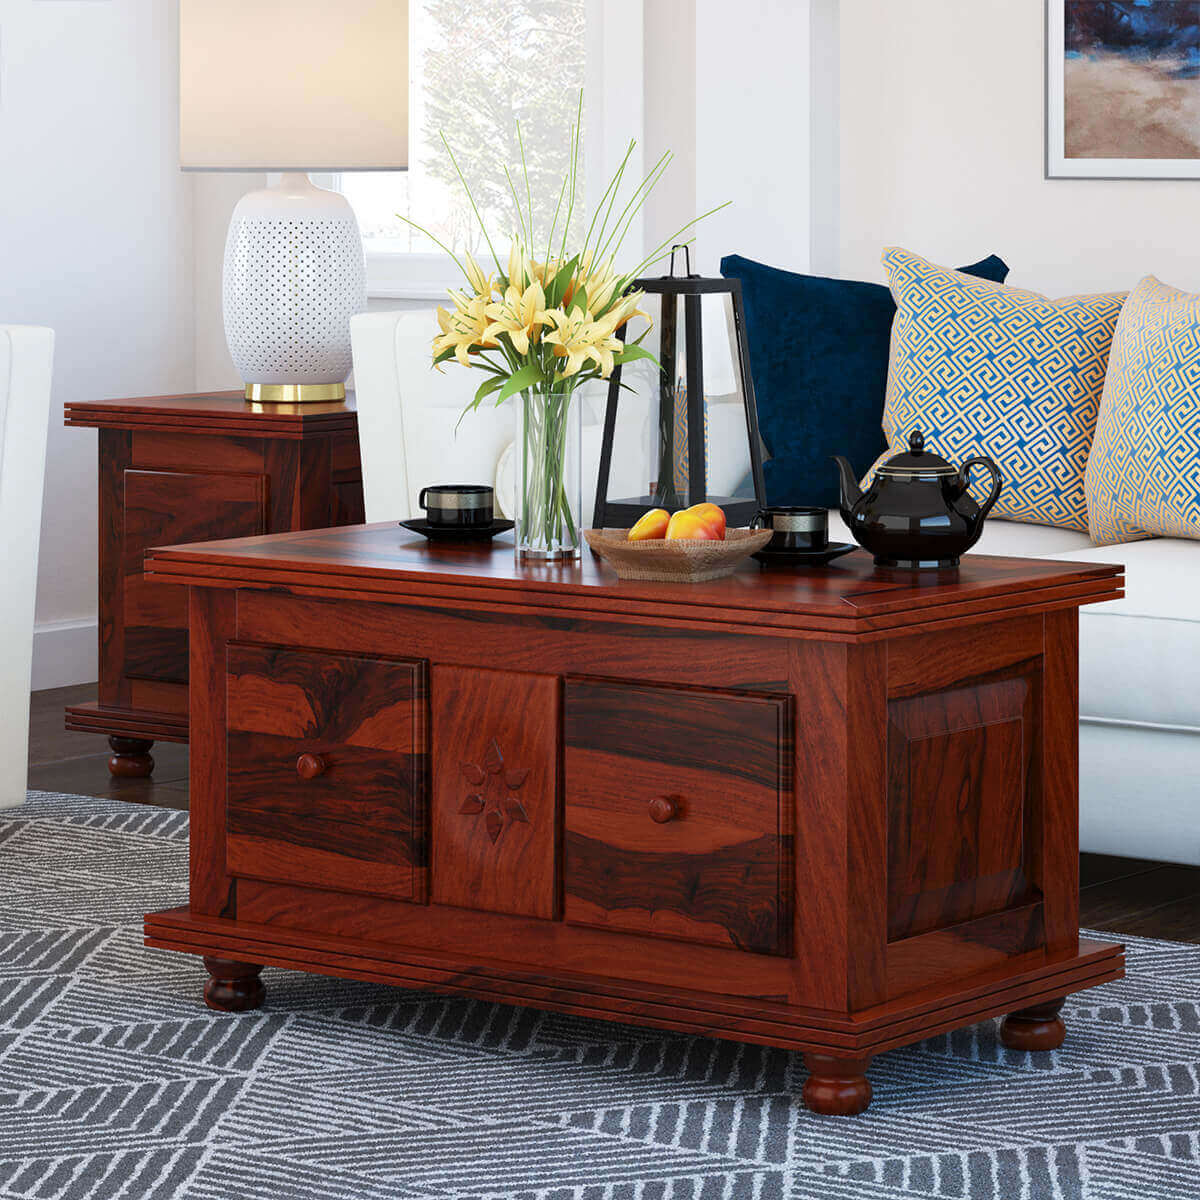 Rustic wood drawers storage cocktail coffee table Rustic wooden coffee tables